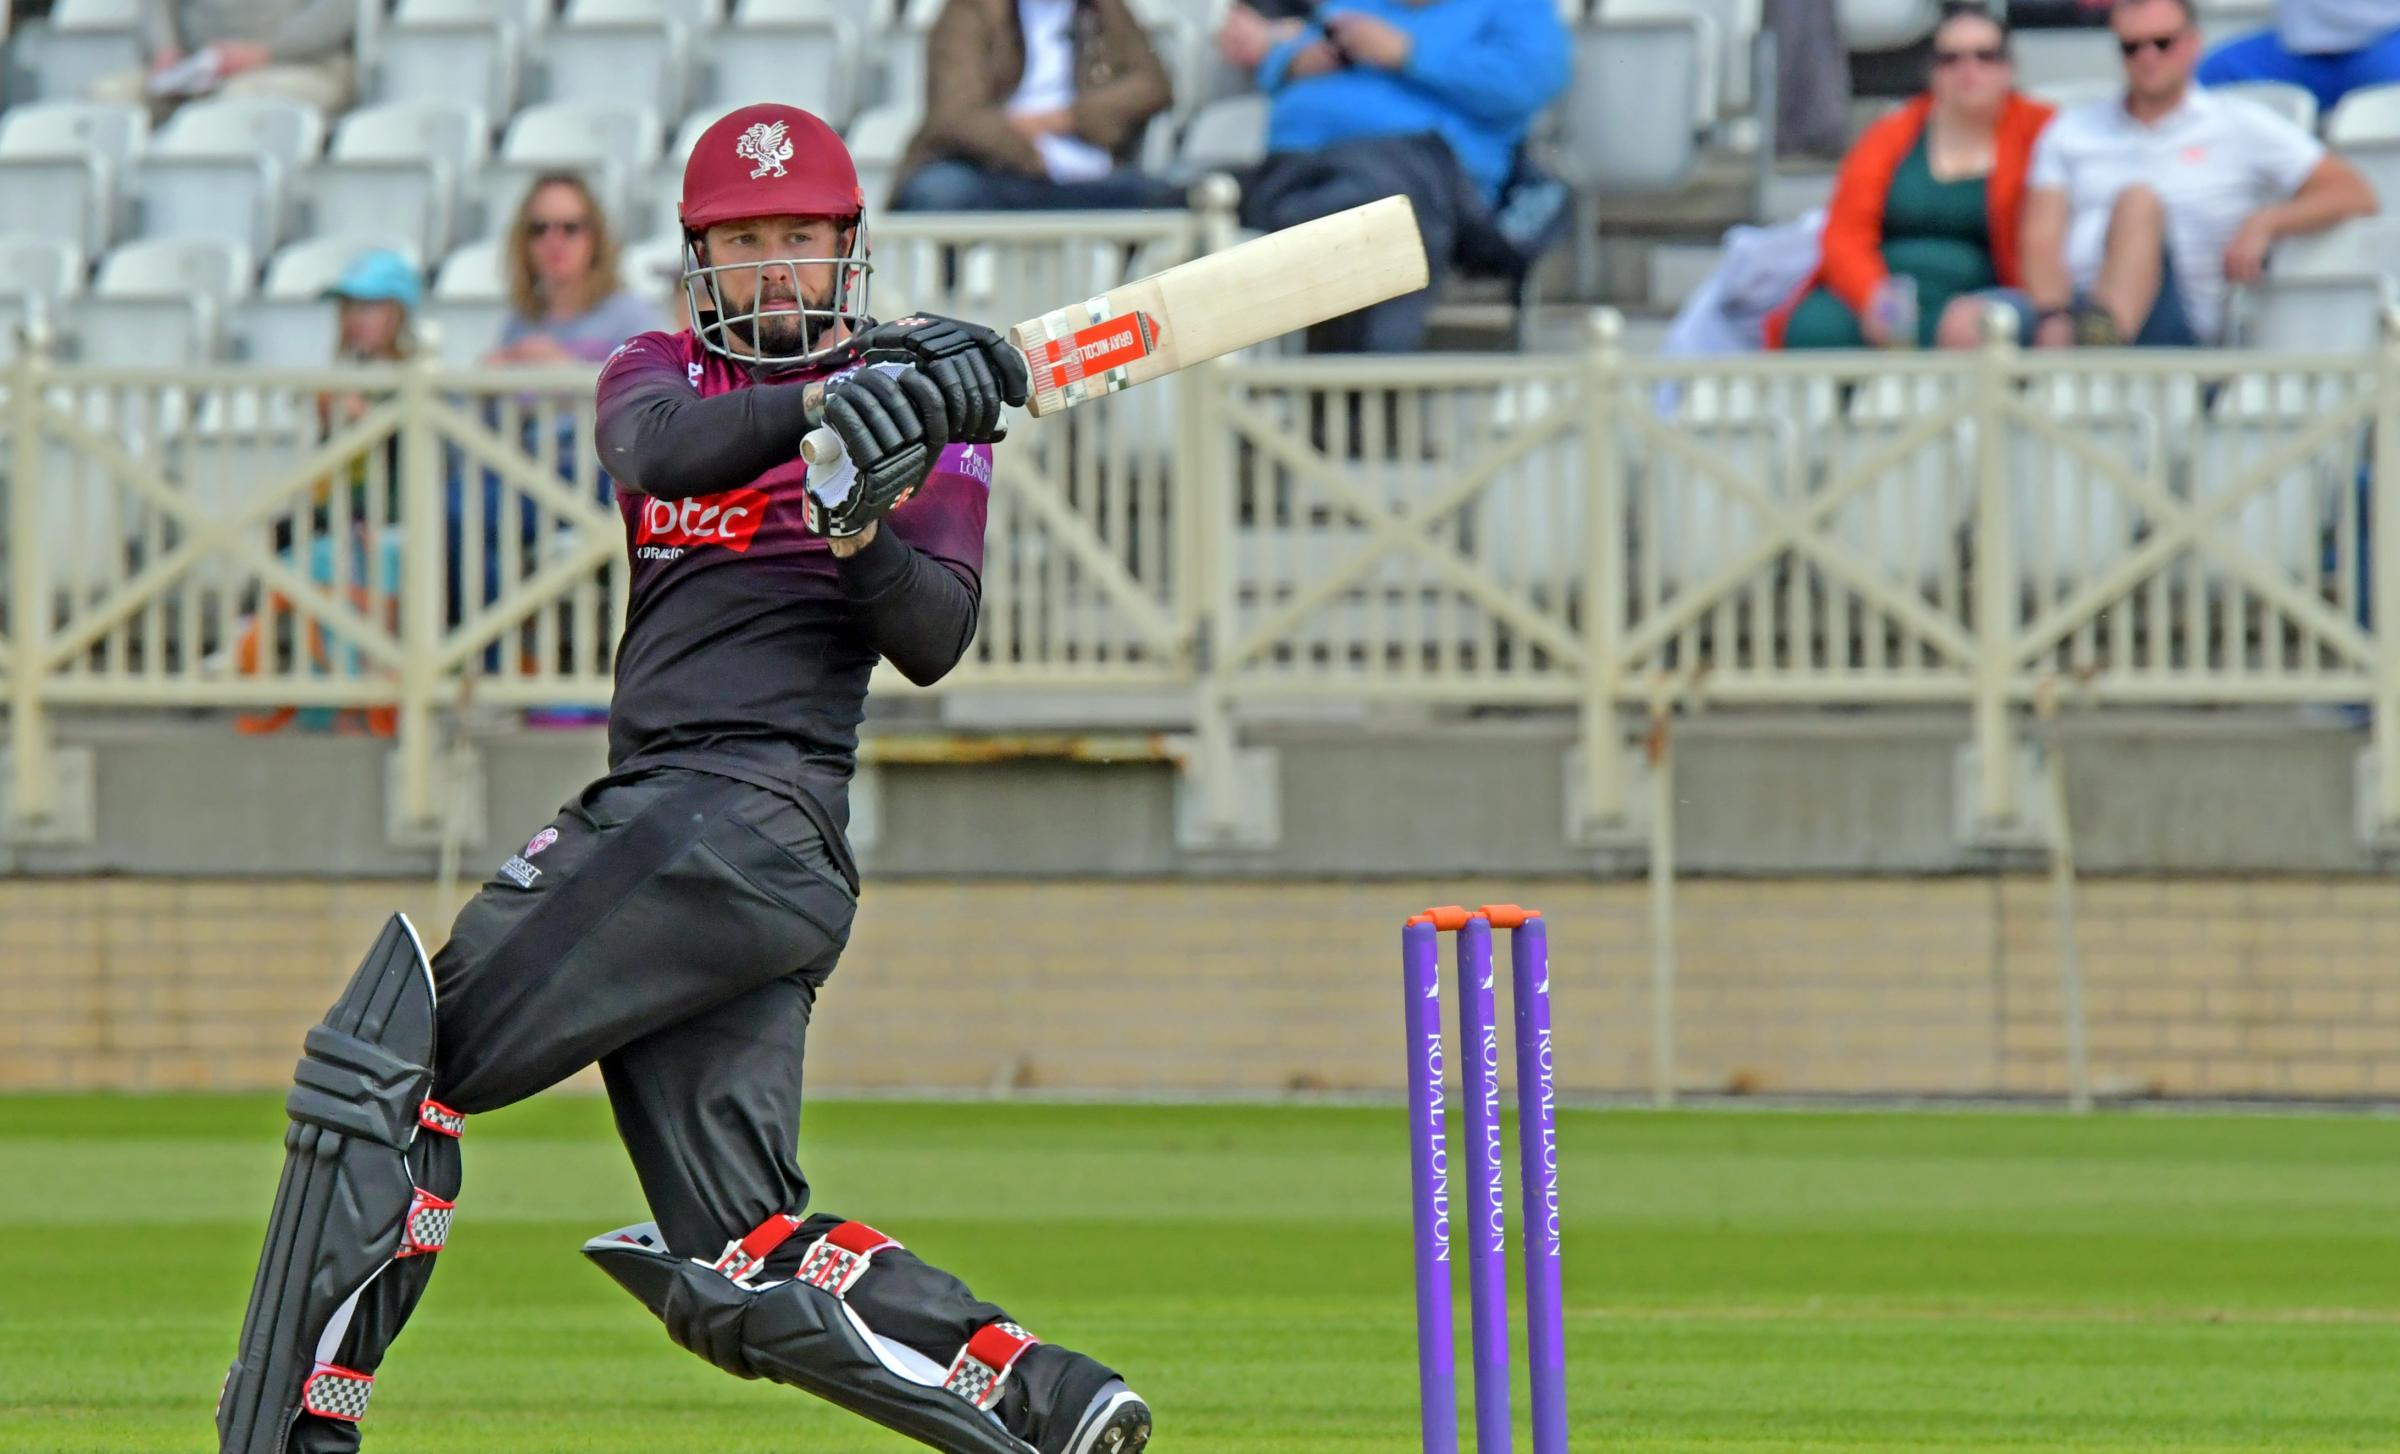 CRICKET: Tom Banton expected to feature for Taunton St Andrew's against Bath